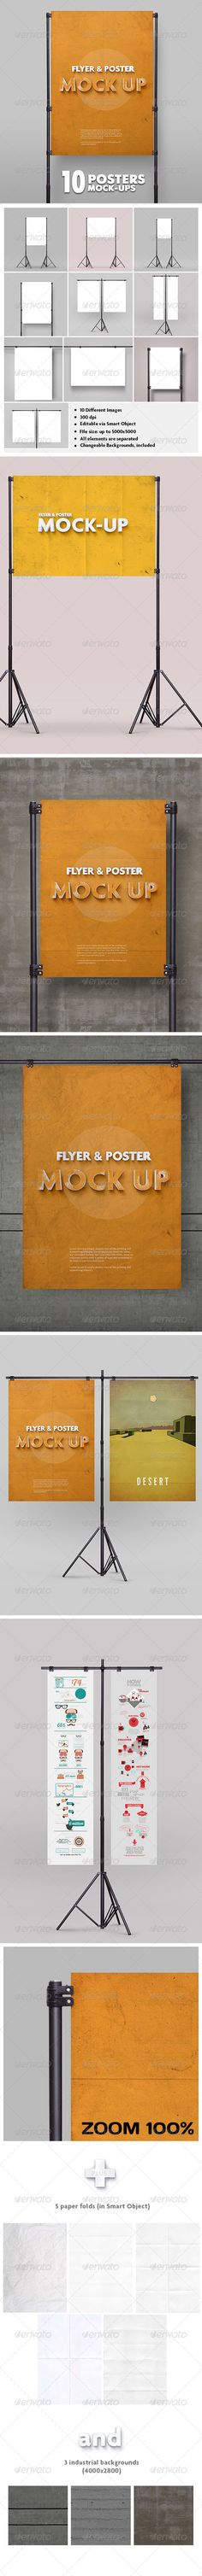 Poster Mockup vol.2 / 10 Different Images #GraphicRiver